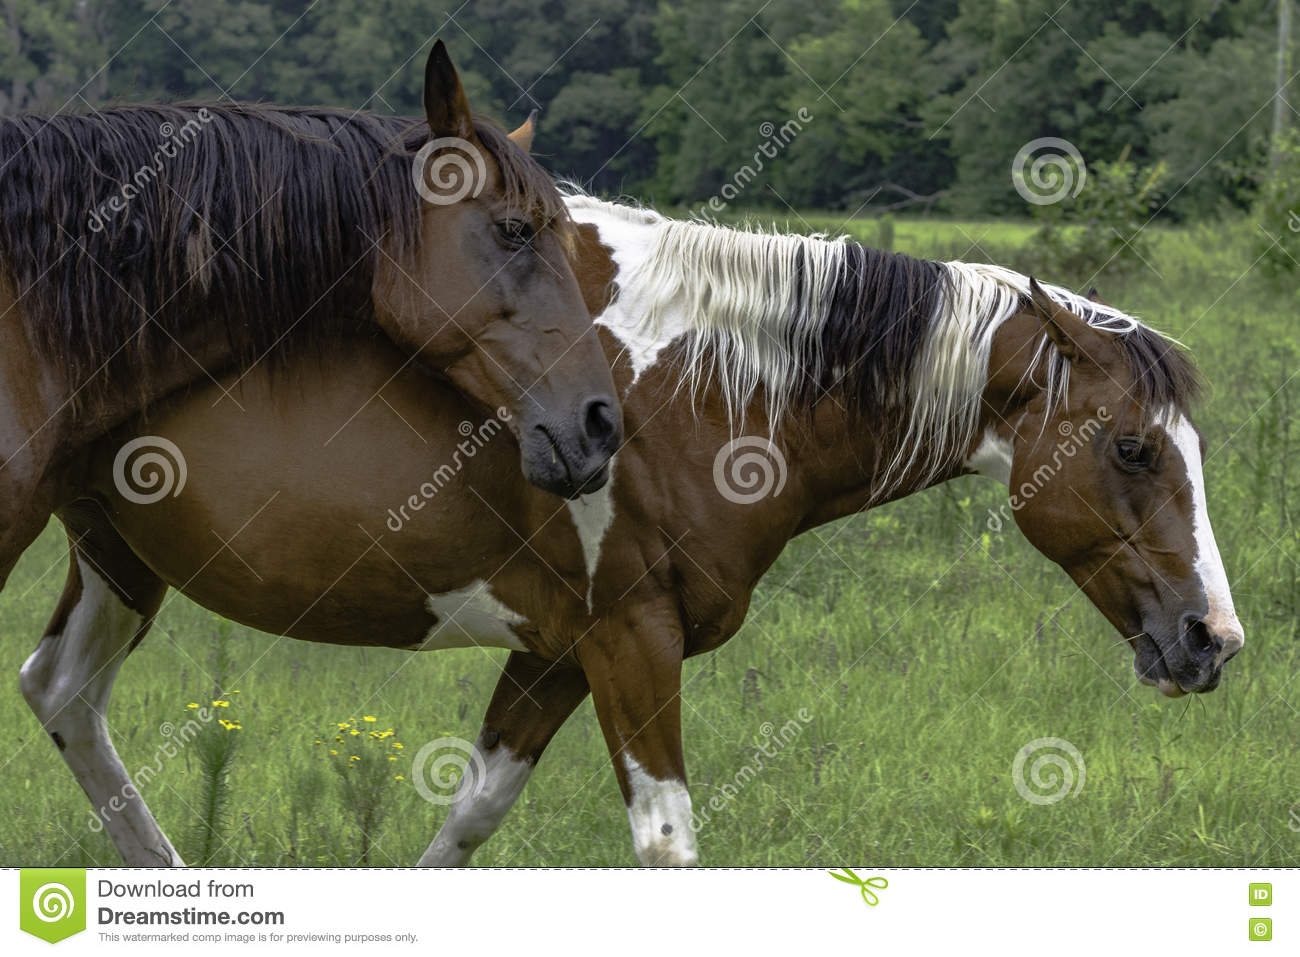 Two horses walking in a pasture